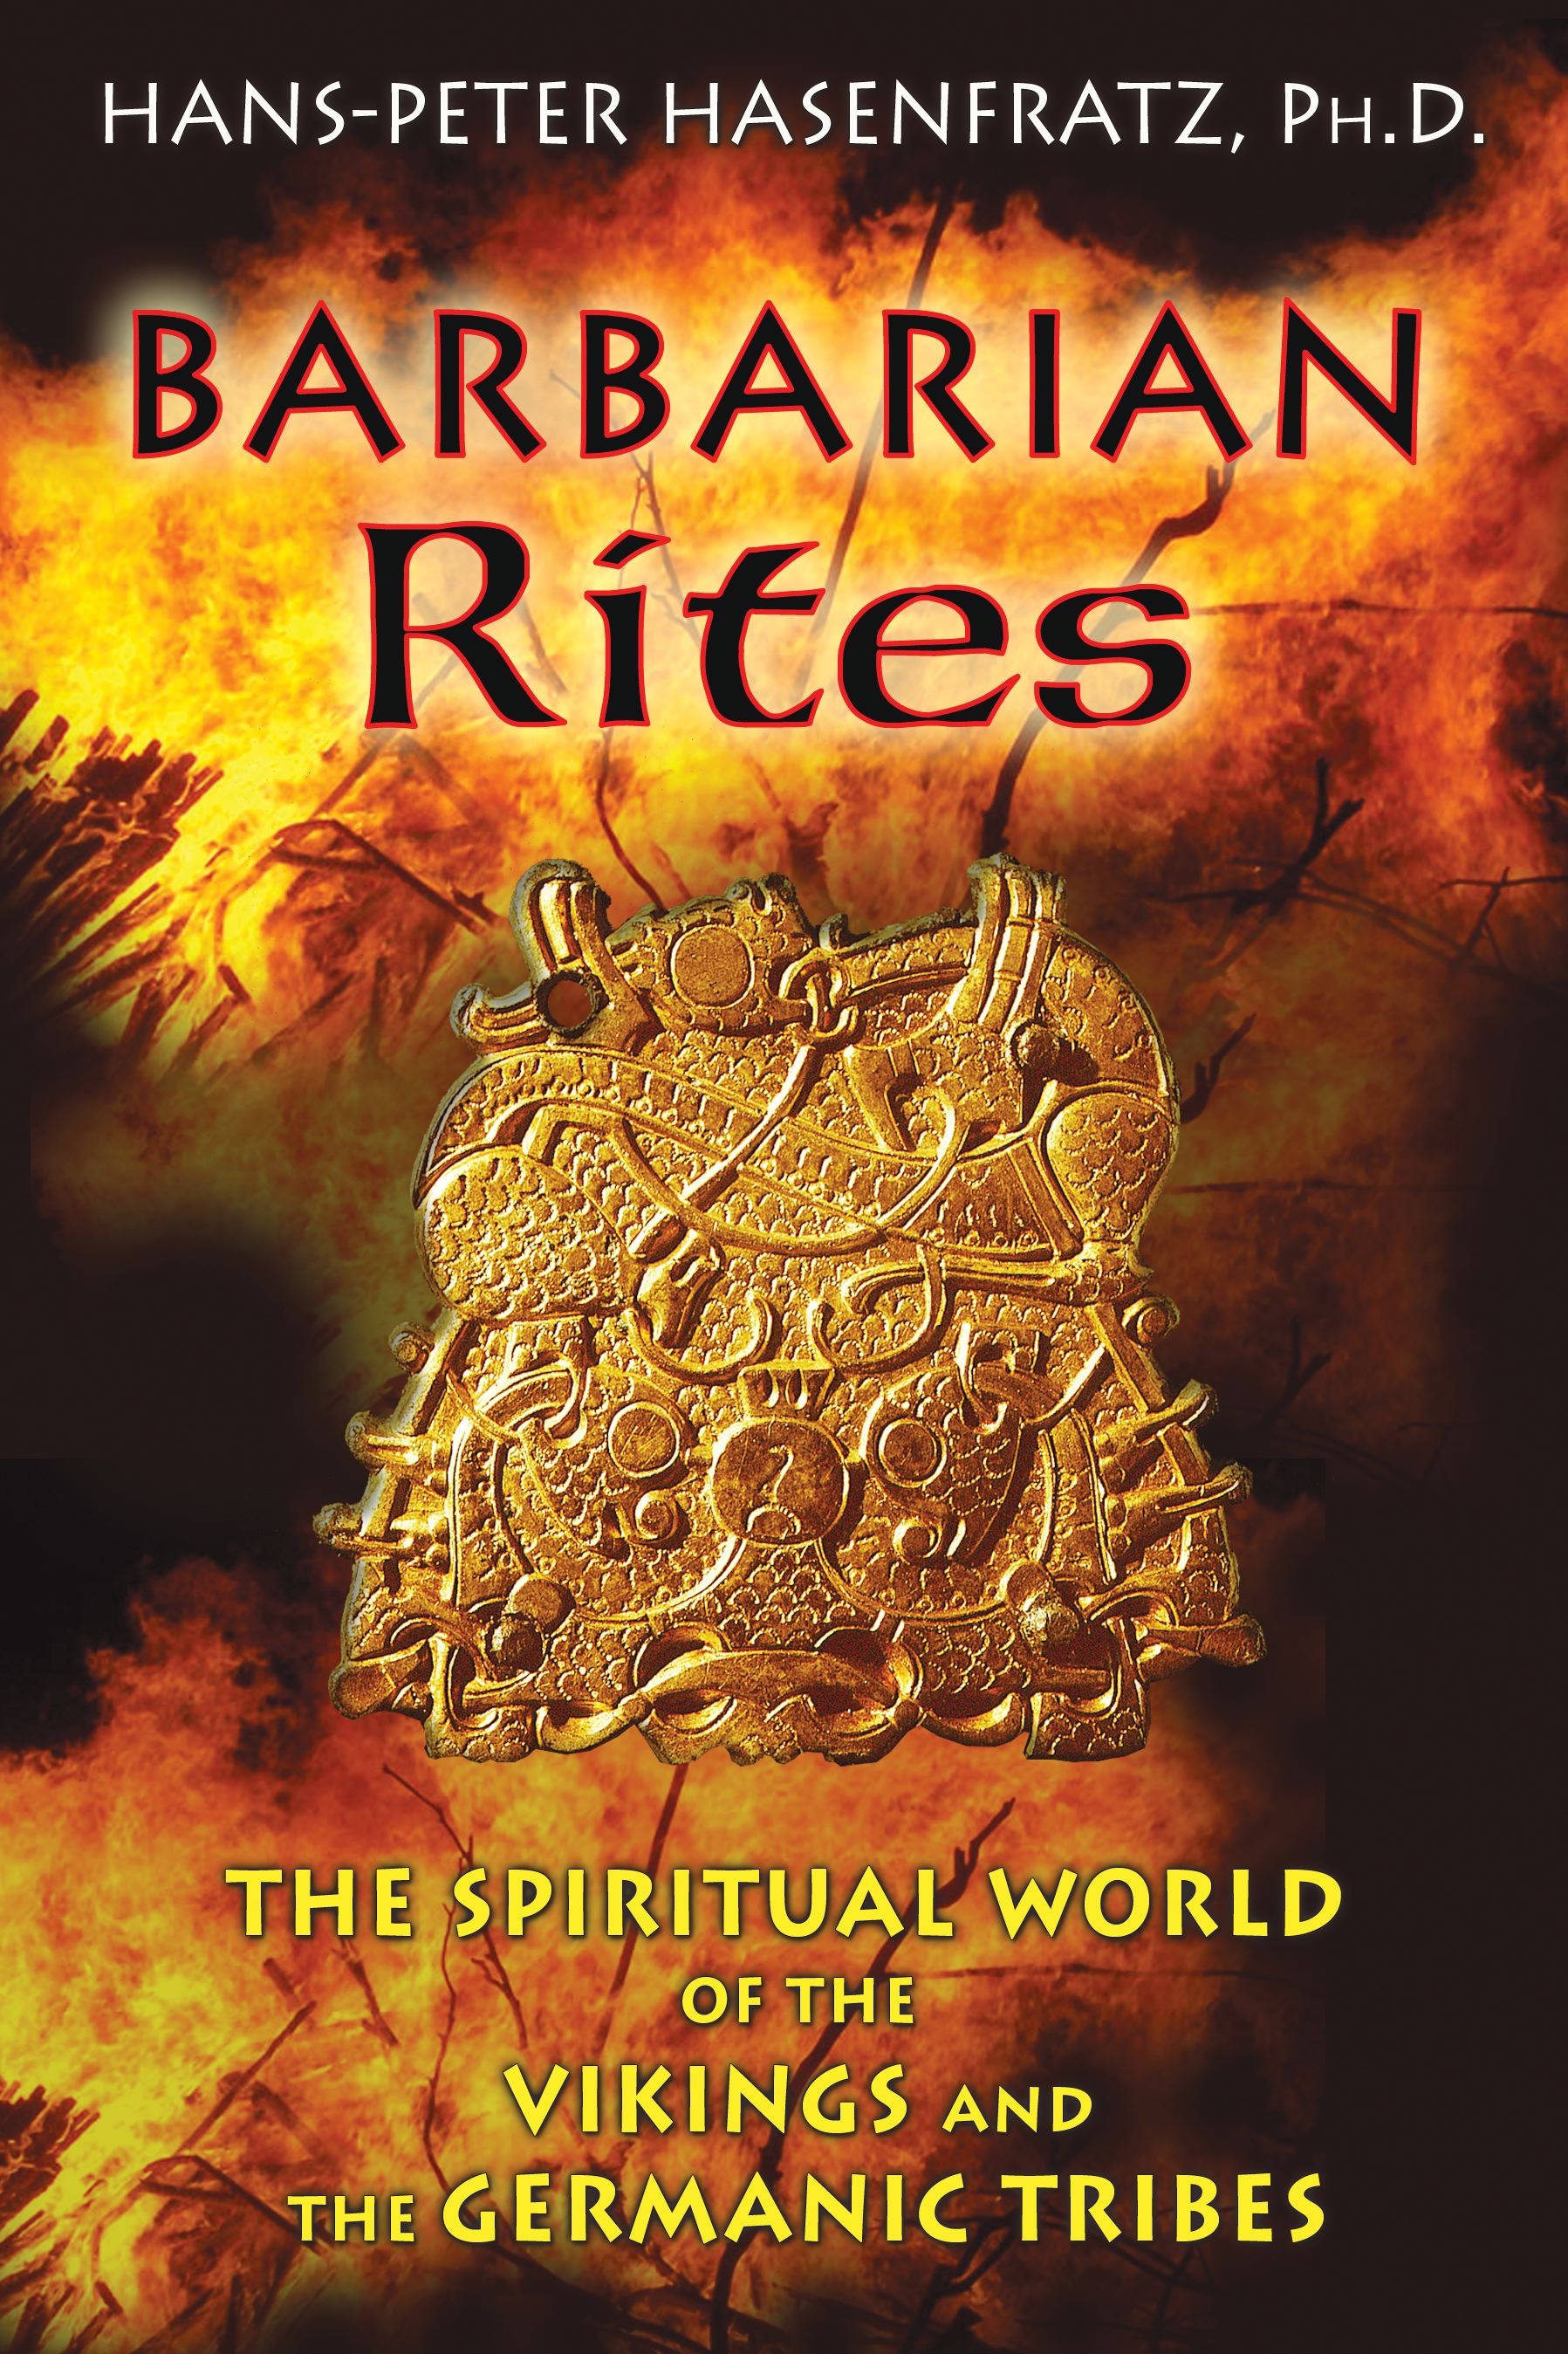 Barbarian-rites-9781594774218_hr